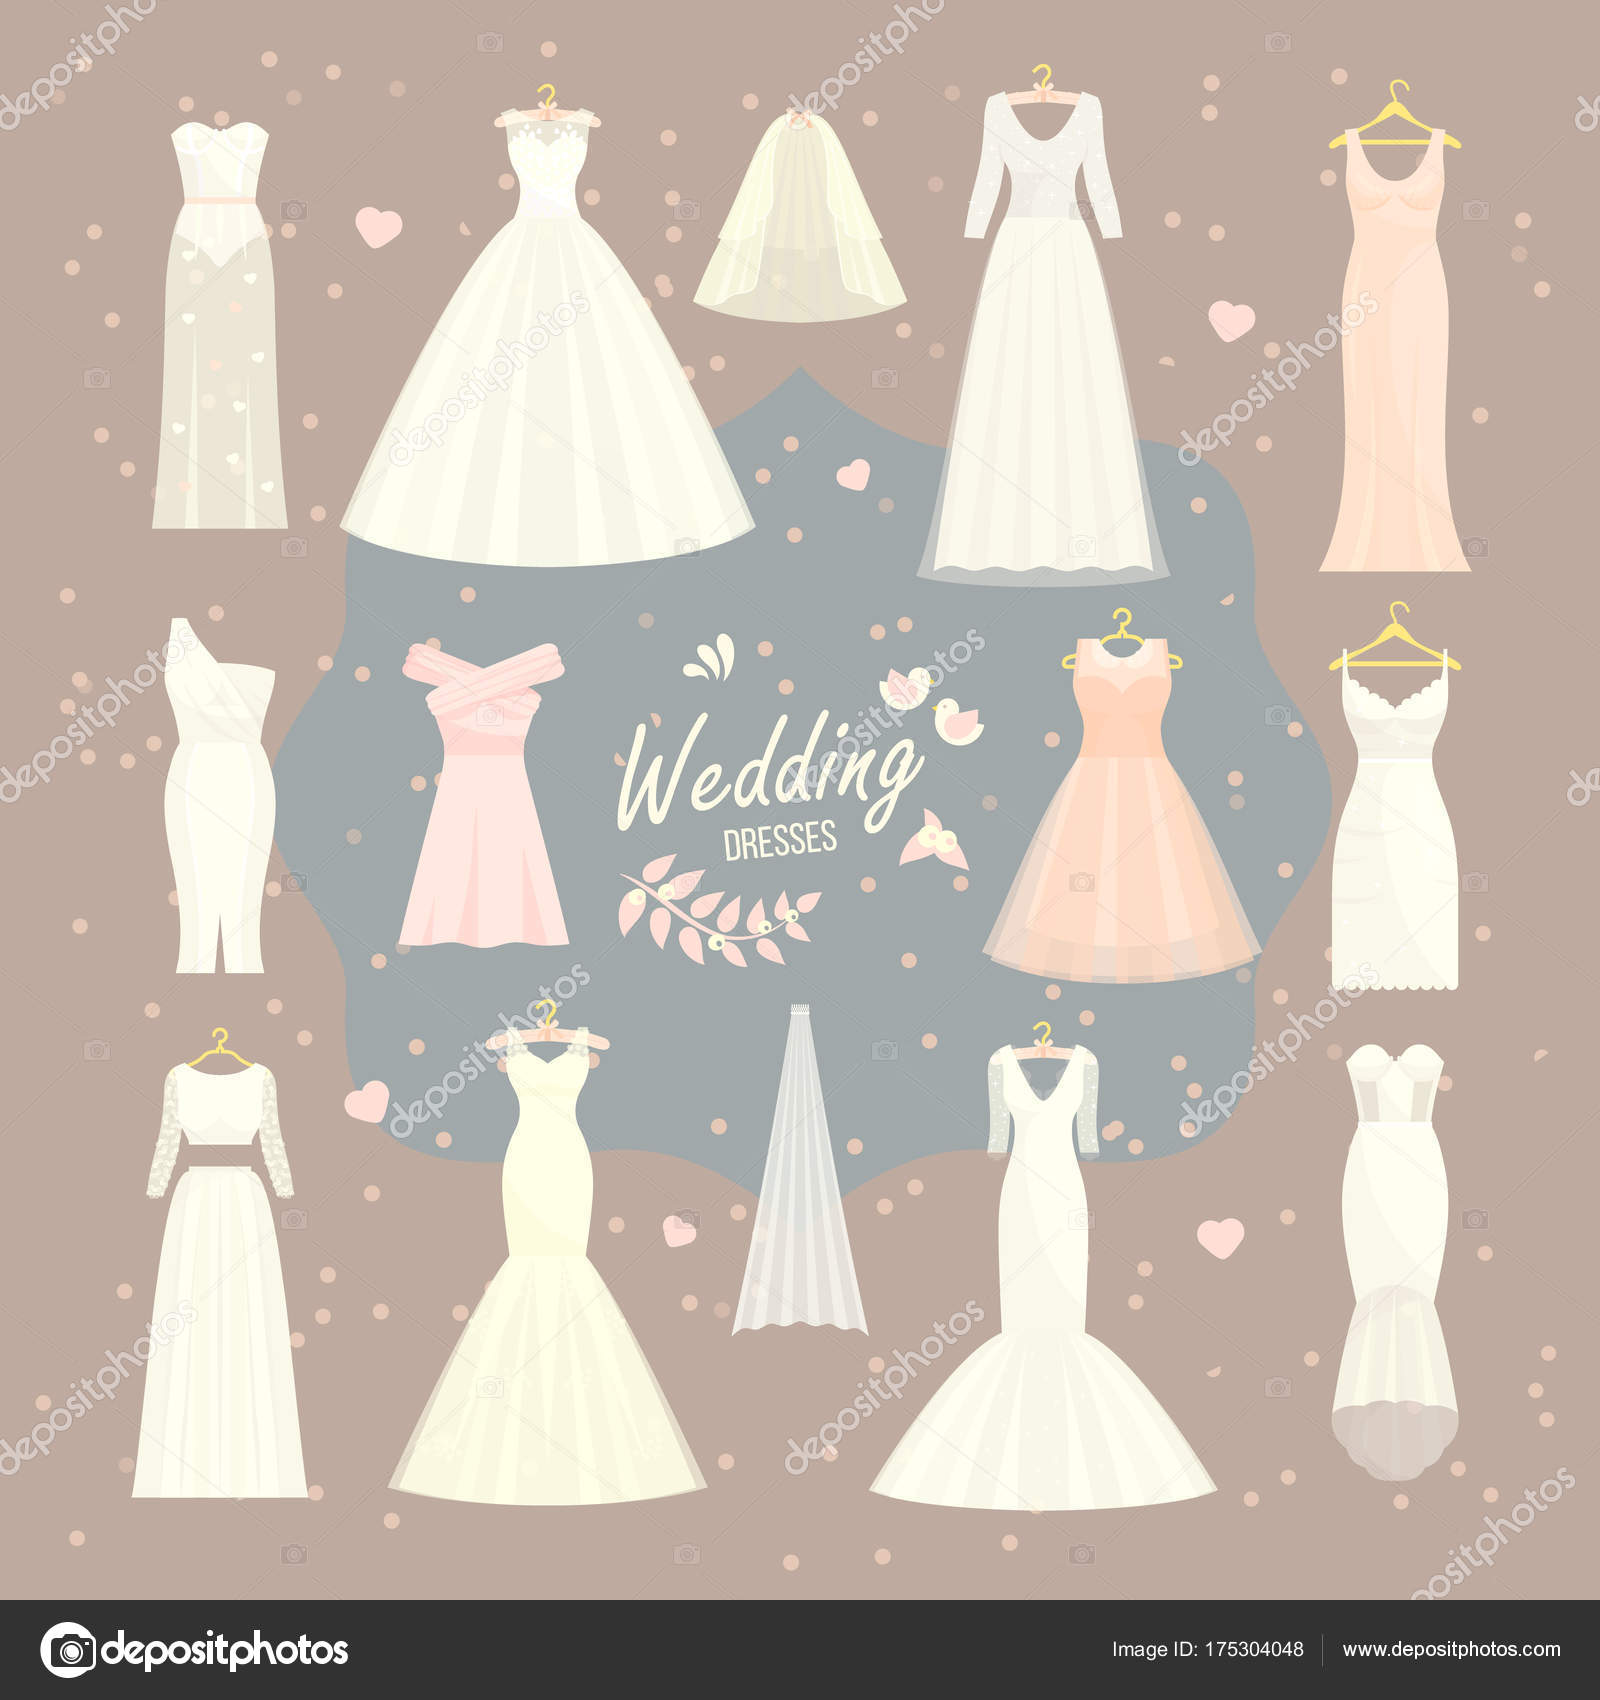 wedding dresses vector set bride and bridesmaid wear white dress accessories bridal shower celebration and marriage fashion isolated illustration